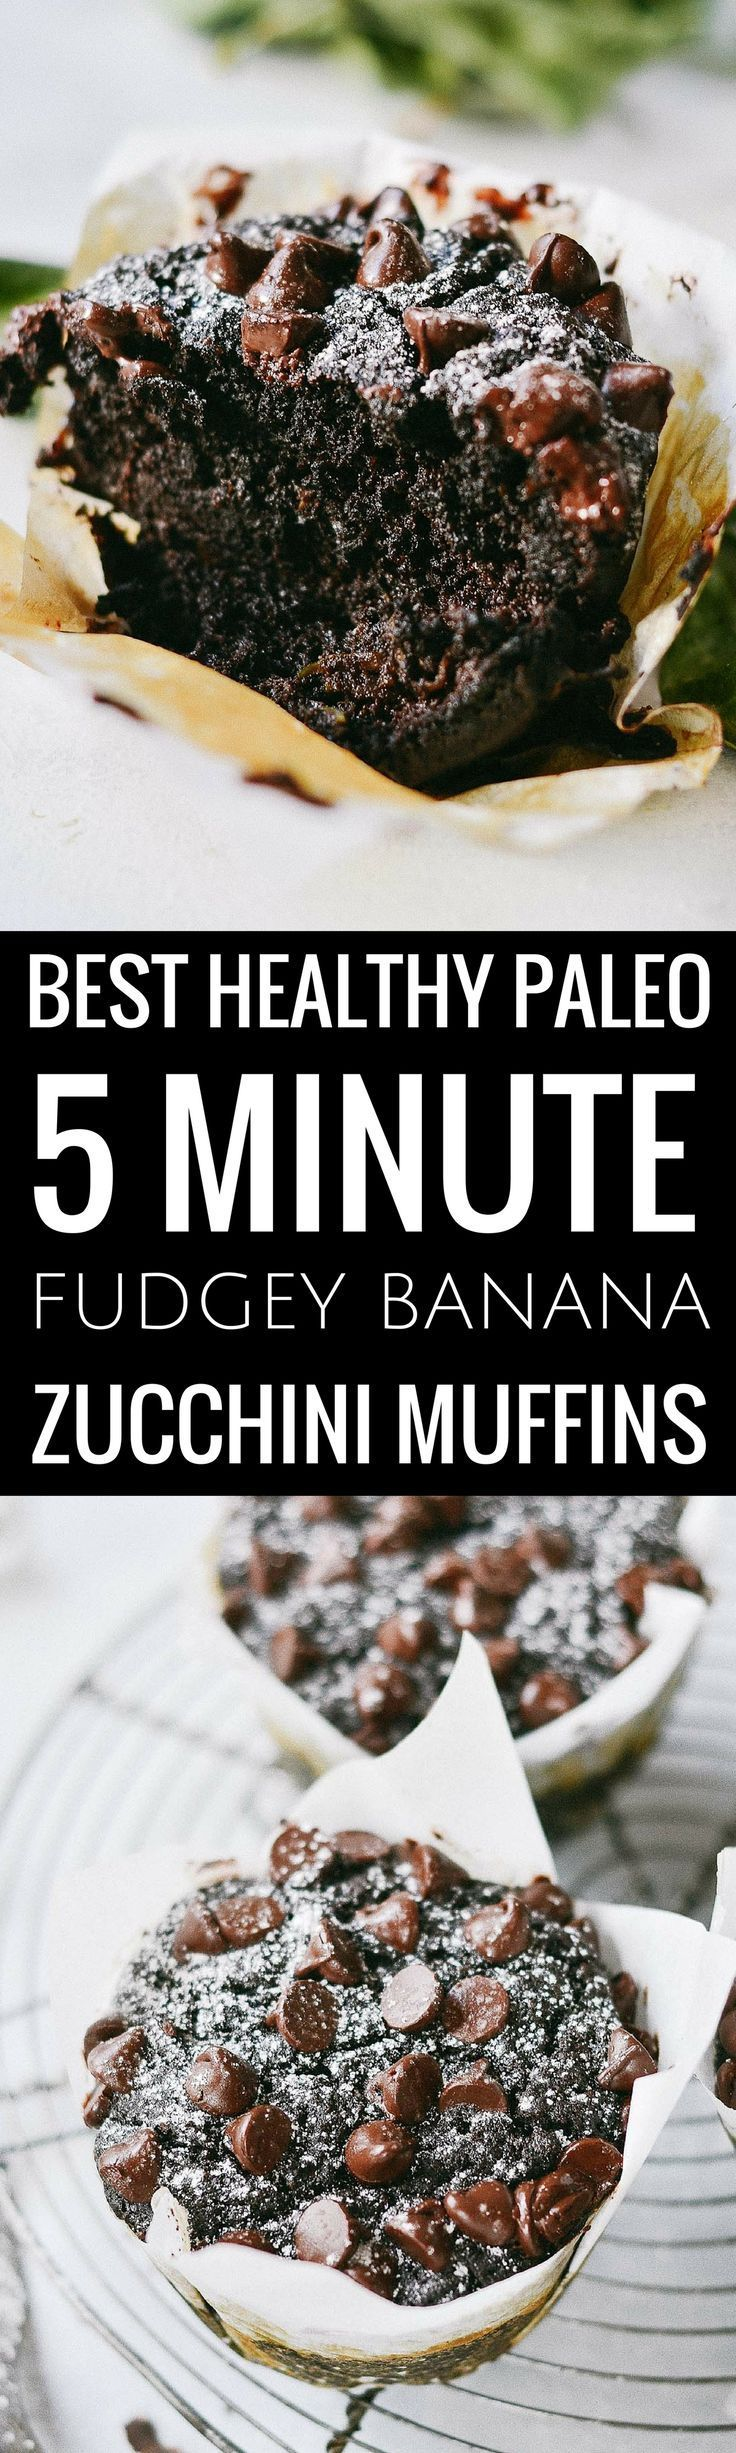 Best healthy flourless fudgey banana zucchini muffins. Made in minutes, these easy gluten free breakfast muffins are extra big bakery style adn loaded with decadent chocolate and healthy greens. Best gluten free breakfast recipes. Easy paleo diet recipes